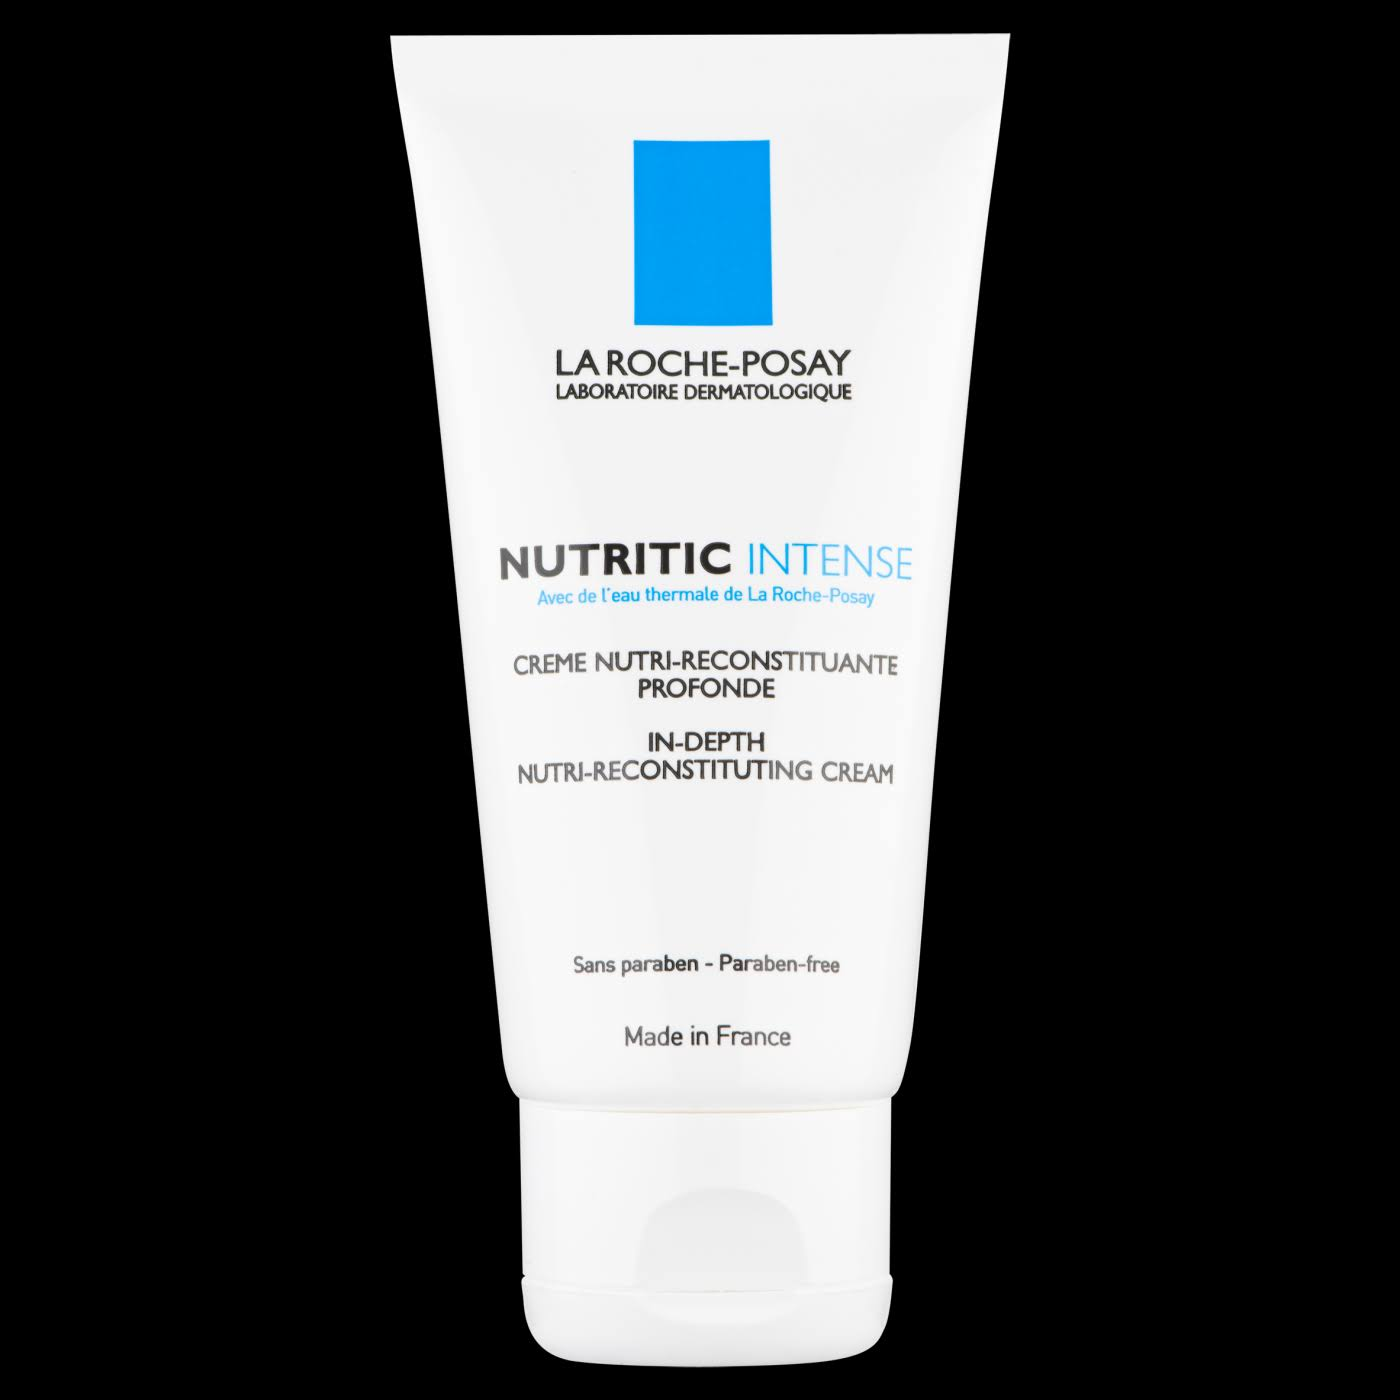 La Roche-Posay Nutritic Intense In-Depth Nutri-Reconstituante Cream - with Thermal Water, 50ml